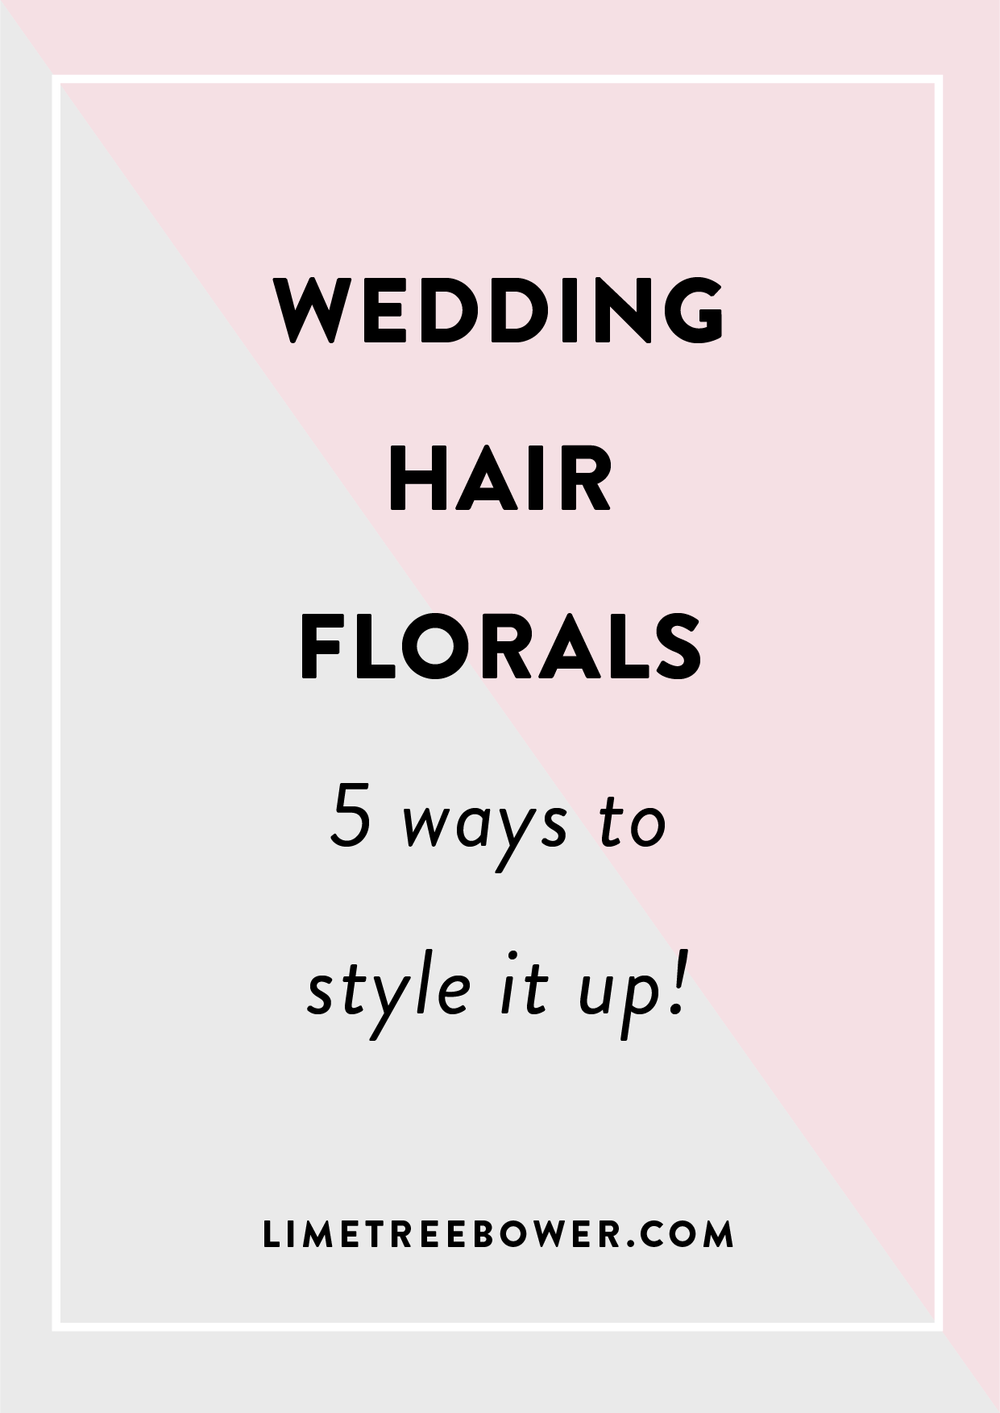 Wedding hair flowers 5 ways to style it up lime tree bower most of us dont get a cool excuse to wear a beautiful flower crown every day even though wed secretly love to its no surprise why hair florals have izmirmasajfo